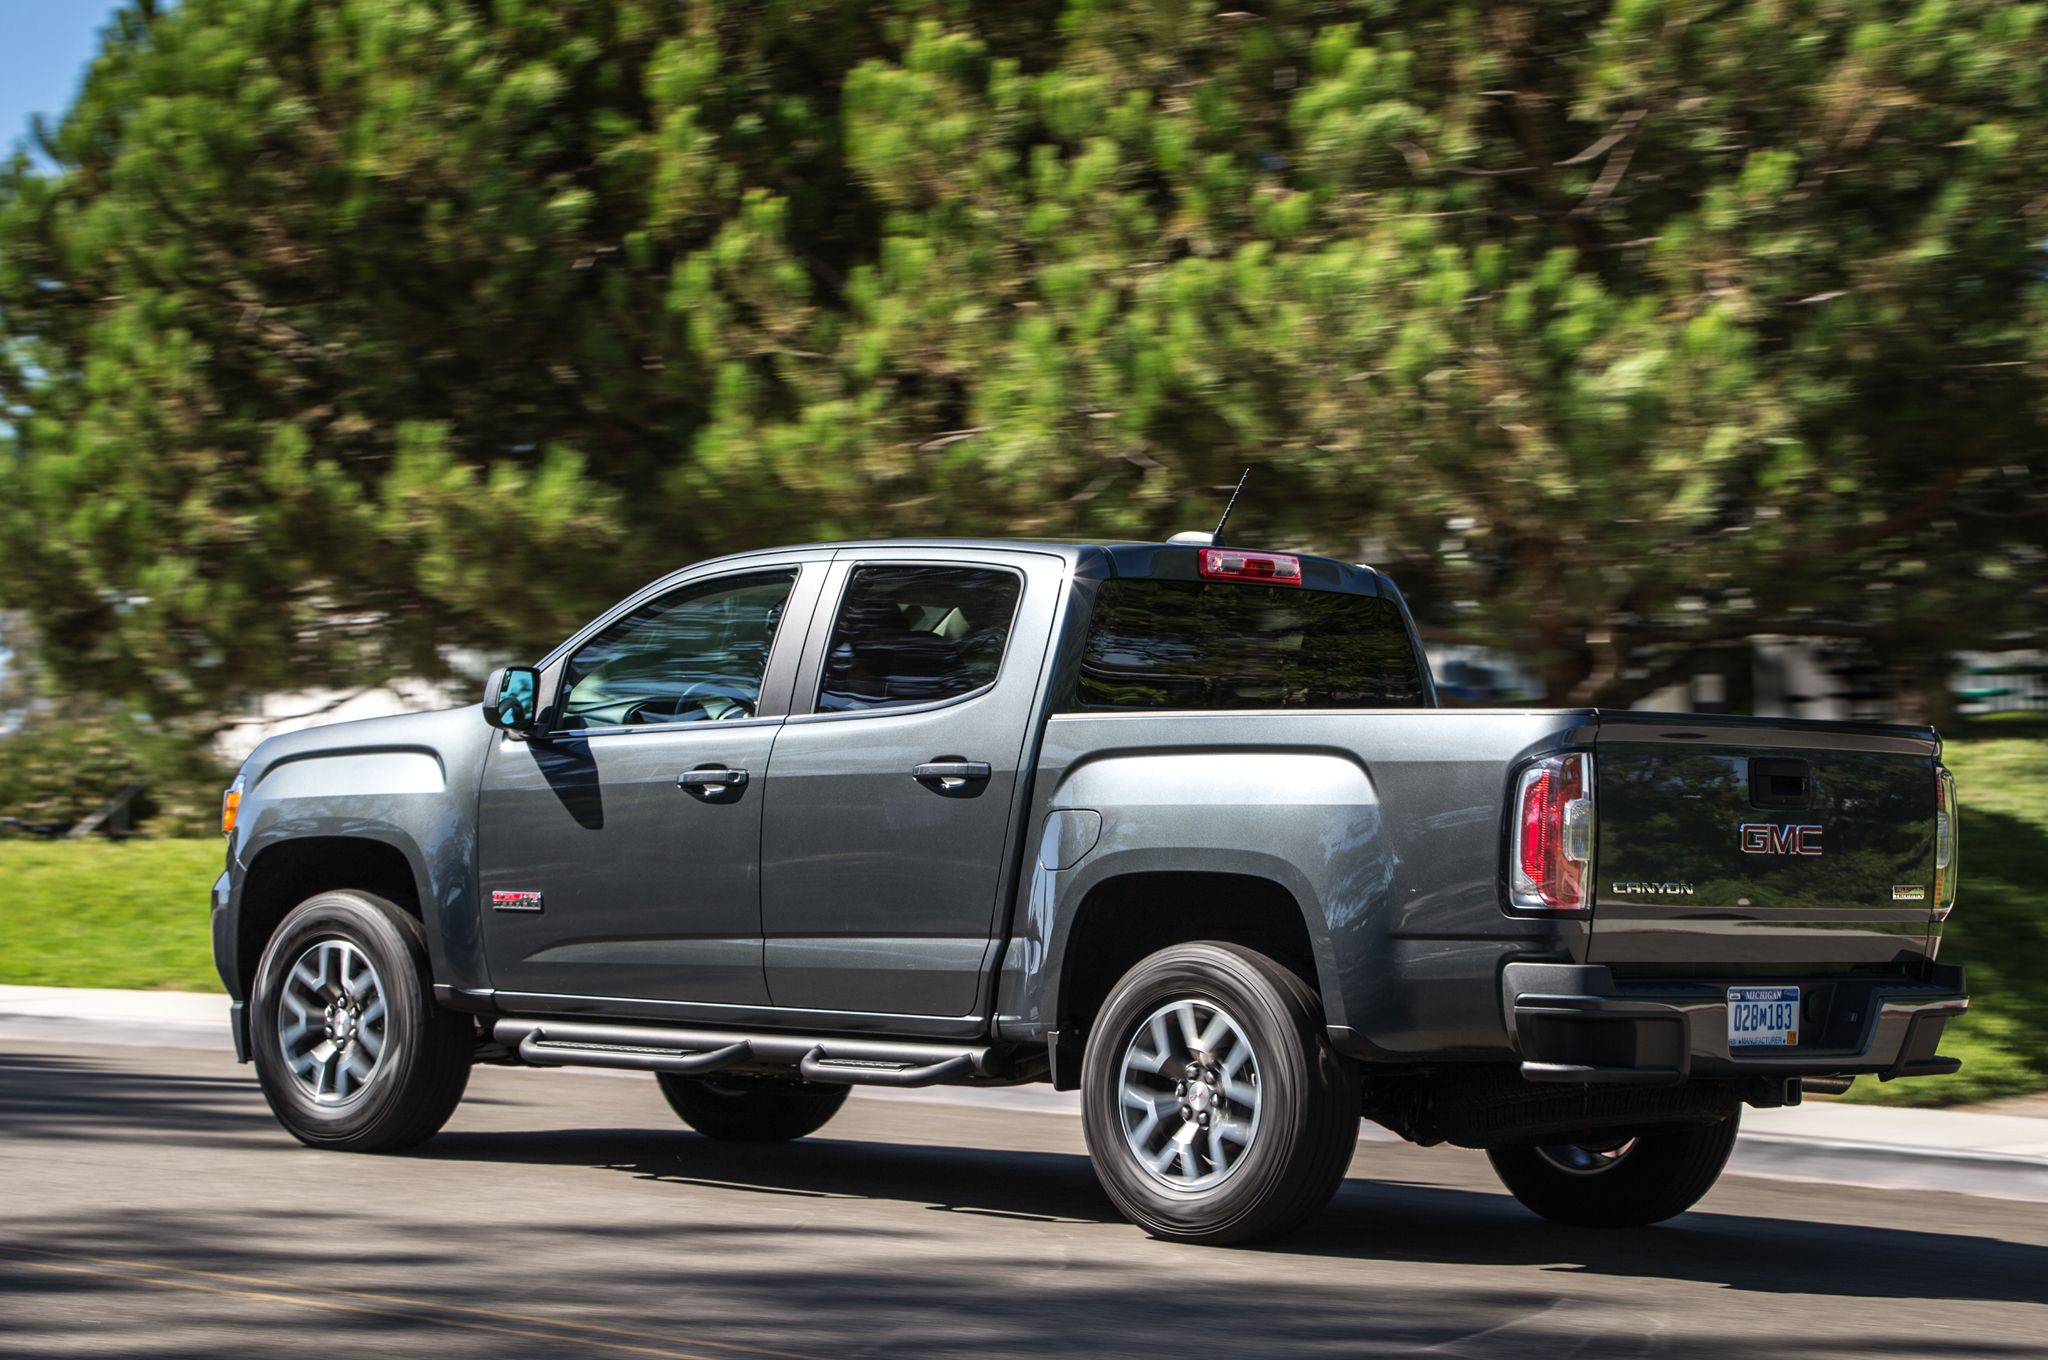 2015 Gmc Canyon All Terrain Lifted Gmc Canyon Gmc Canyon All Terrain Gmc